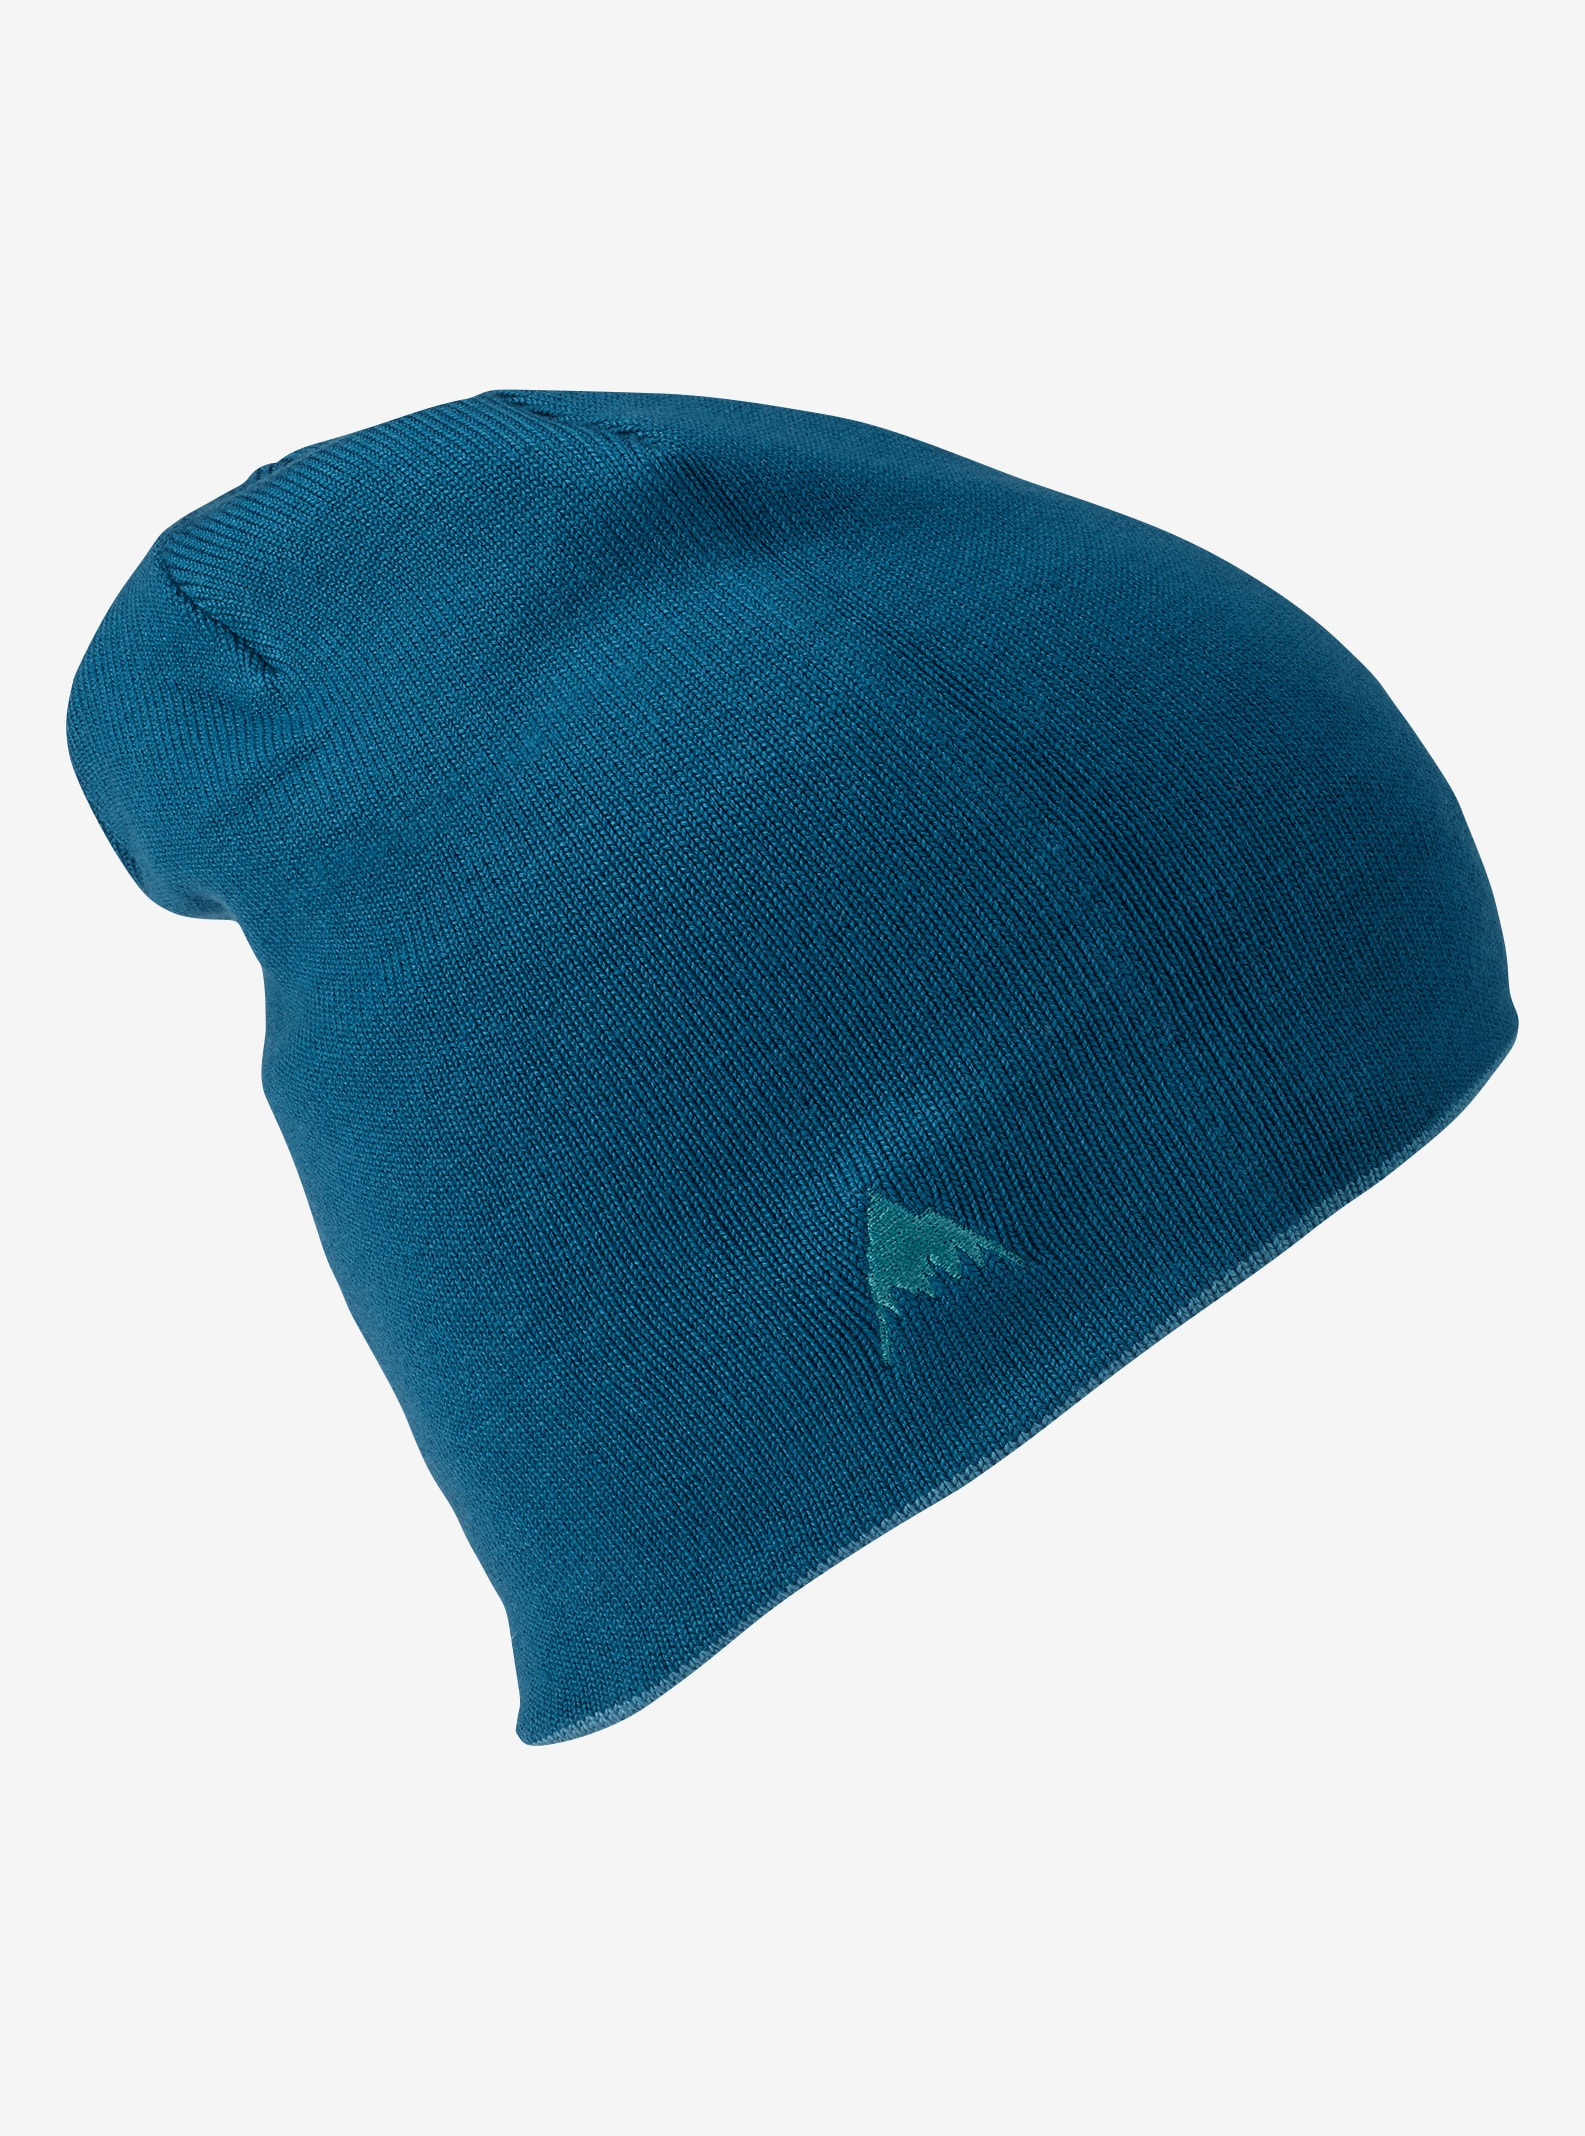 Women's Burton Belle Beanie - Reversible shown in Jaded / Larkspur